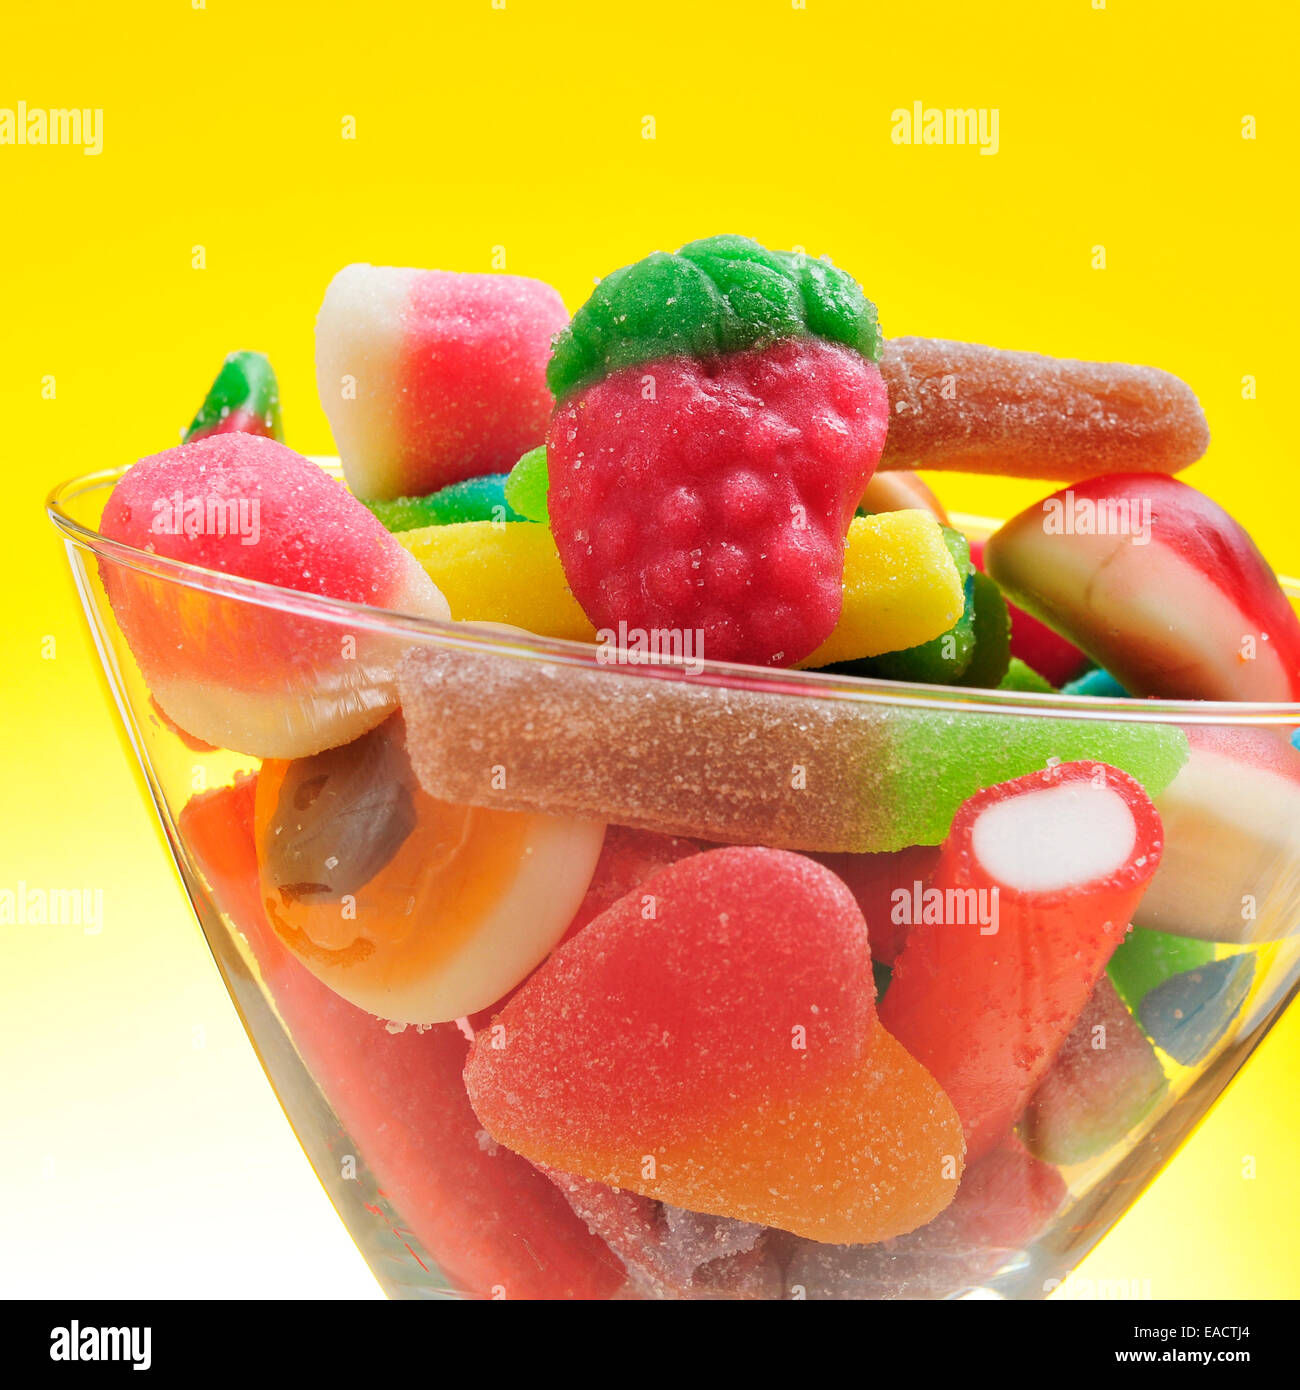 closeup of a pile of different candies in a glass on a yellow background Stock Photo